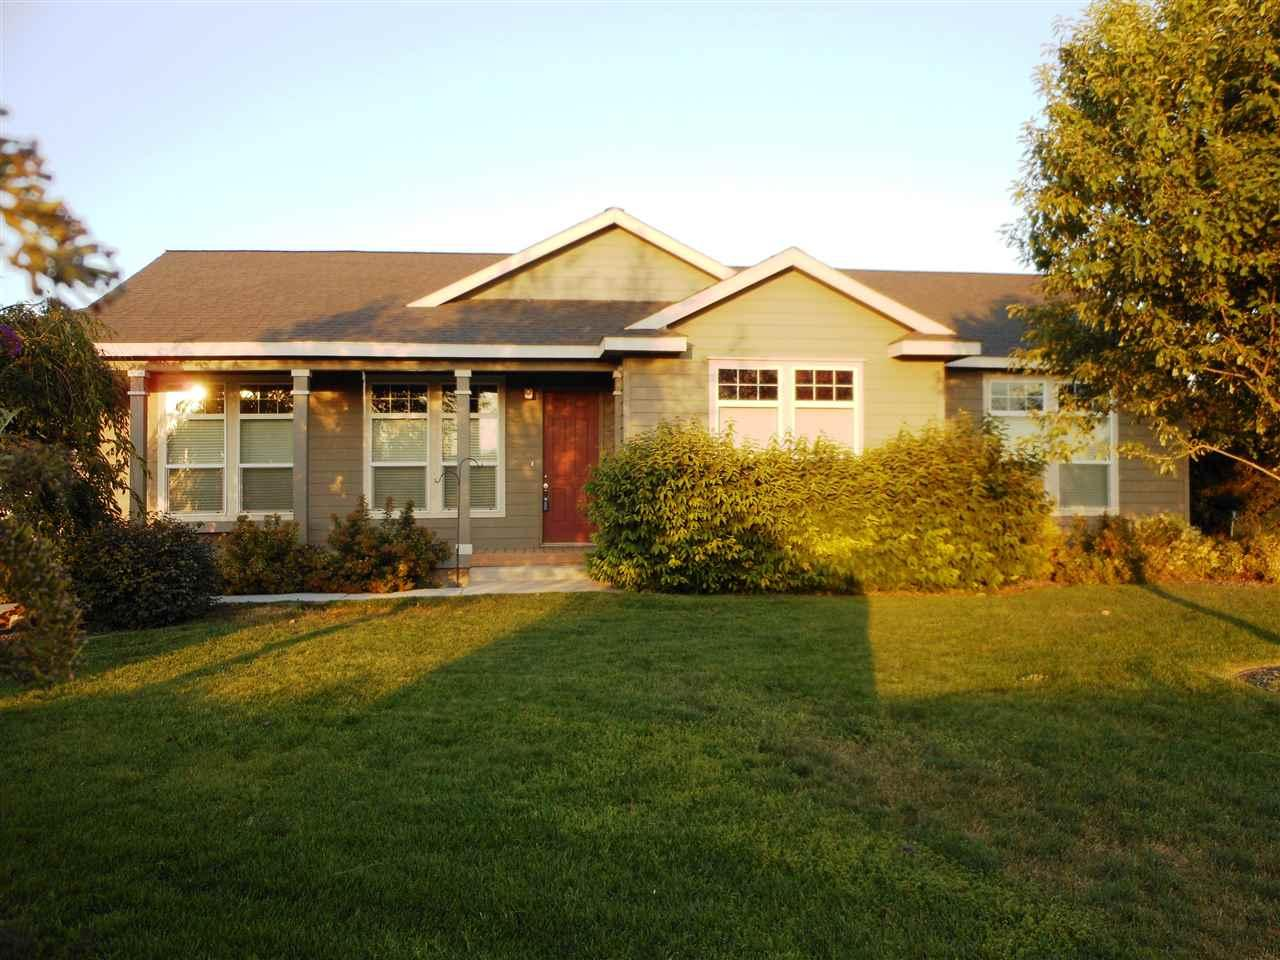 17030 madison rd nampa id 83687 estimate and home details trulia